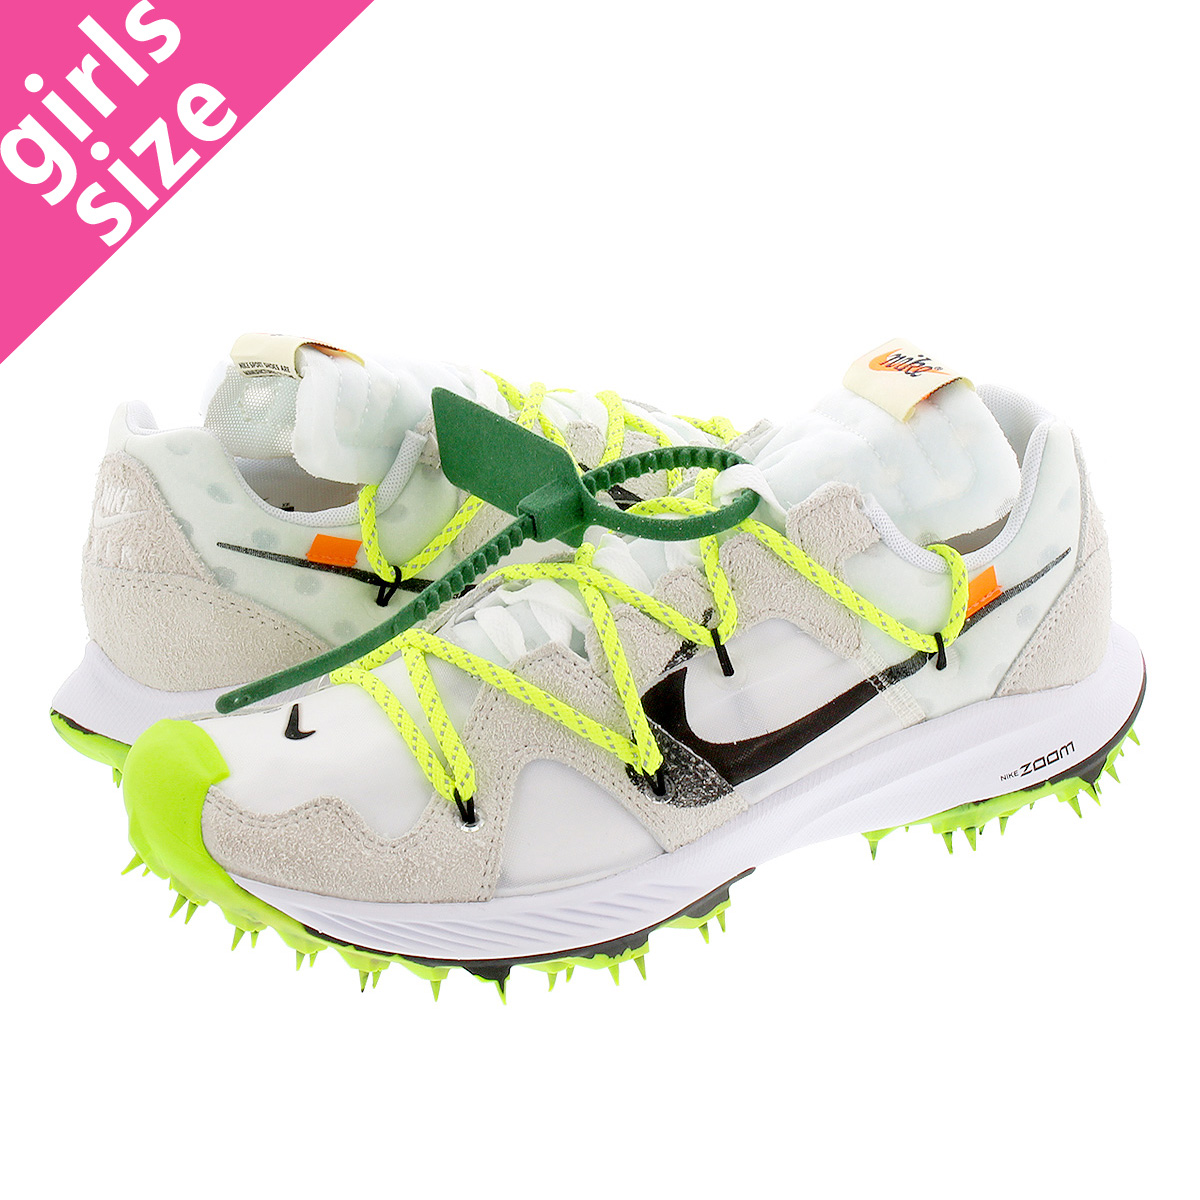 NIKE WMNS ZOOM TERRA KINGER 5 【OFF-WHITE】 ナイキ ウィメンズ ズーム テラ カイガー 5 WHITE/METALLIC SILVER/SAIL/SAFETY ORANGE cd8179-100